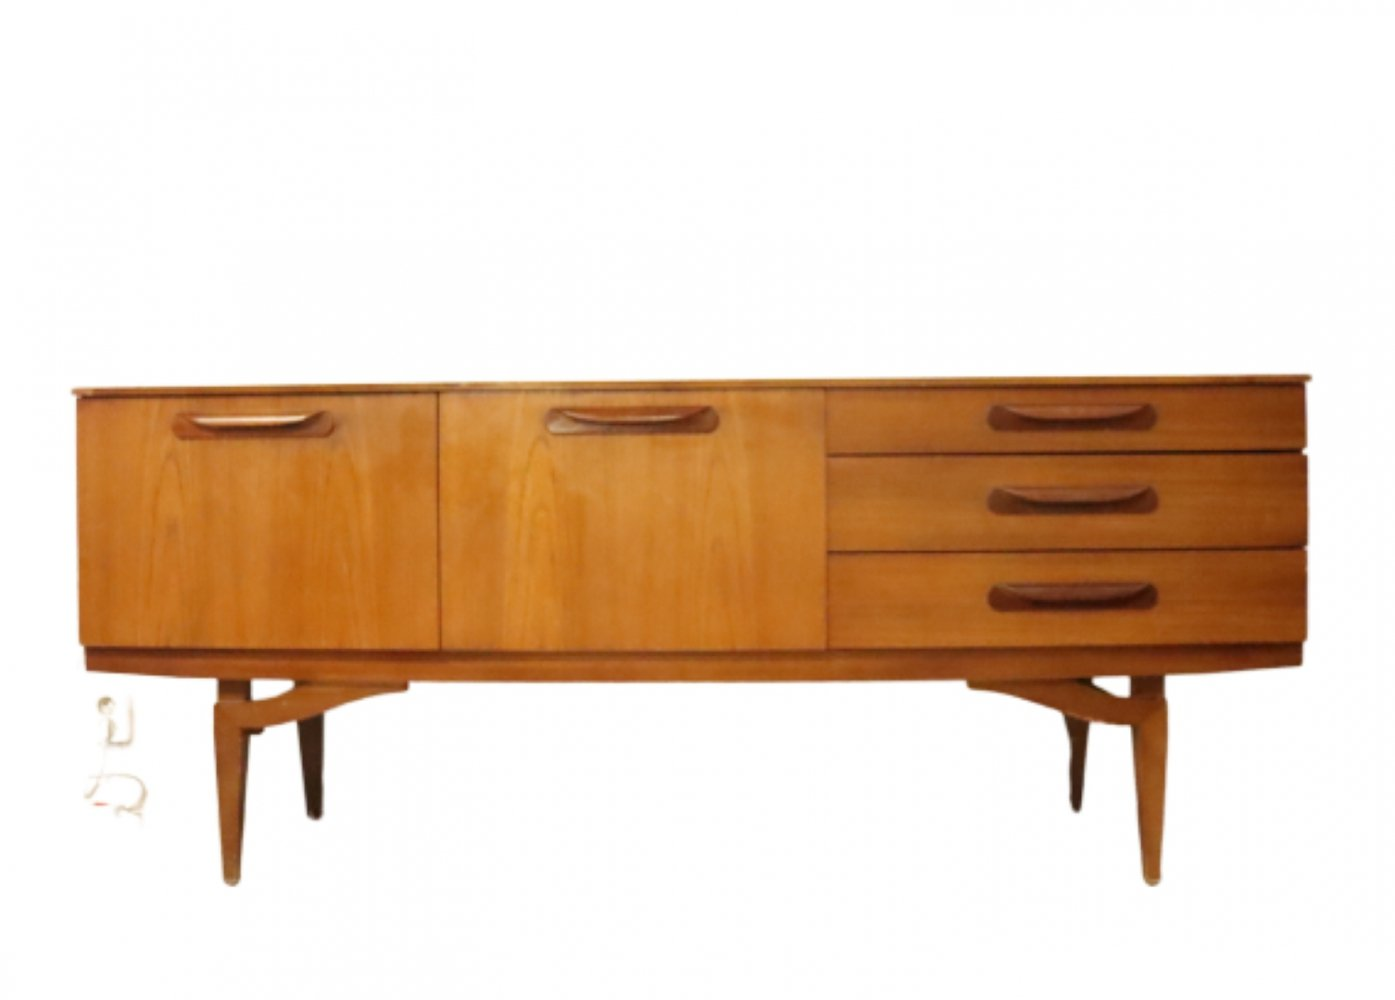 VIntage sideboard by Beautility, 1960s